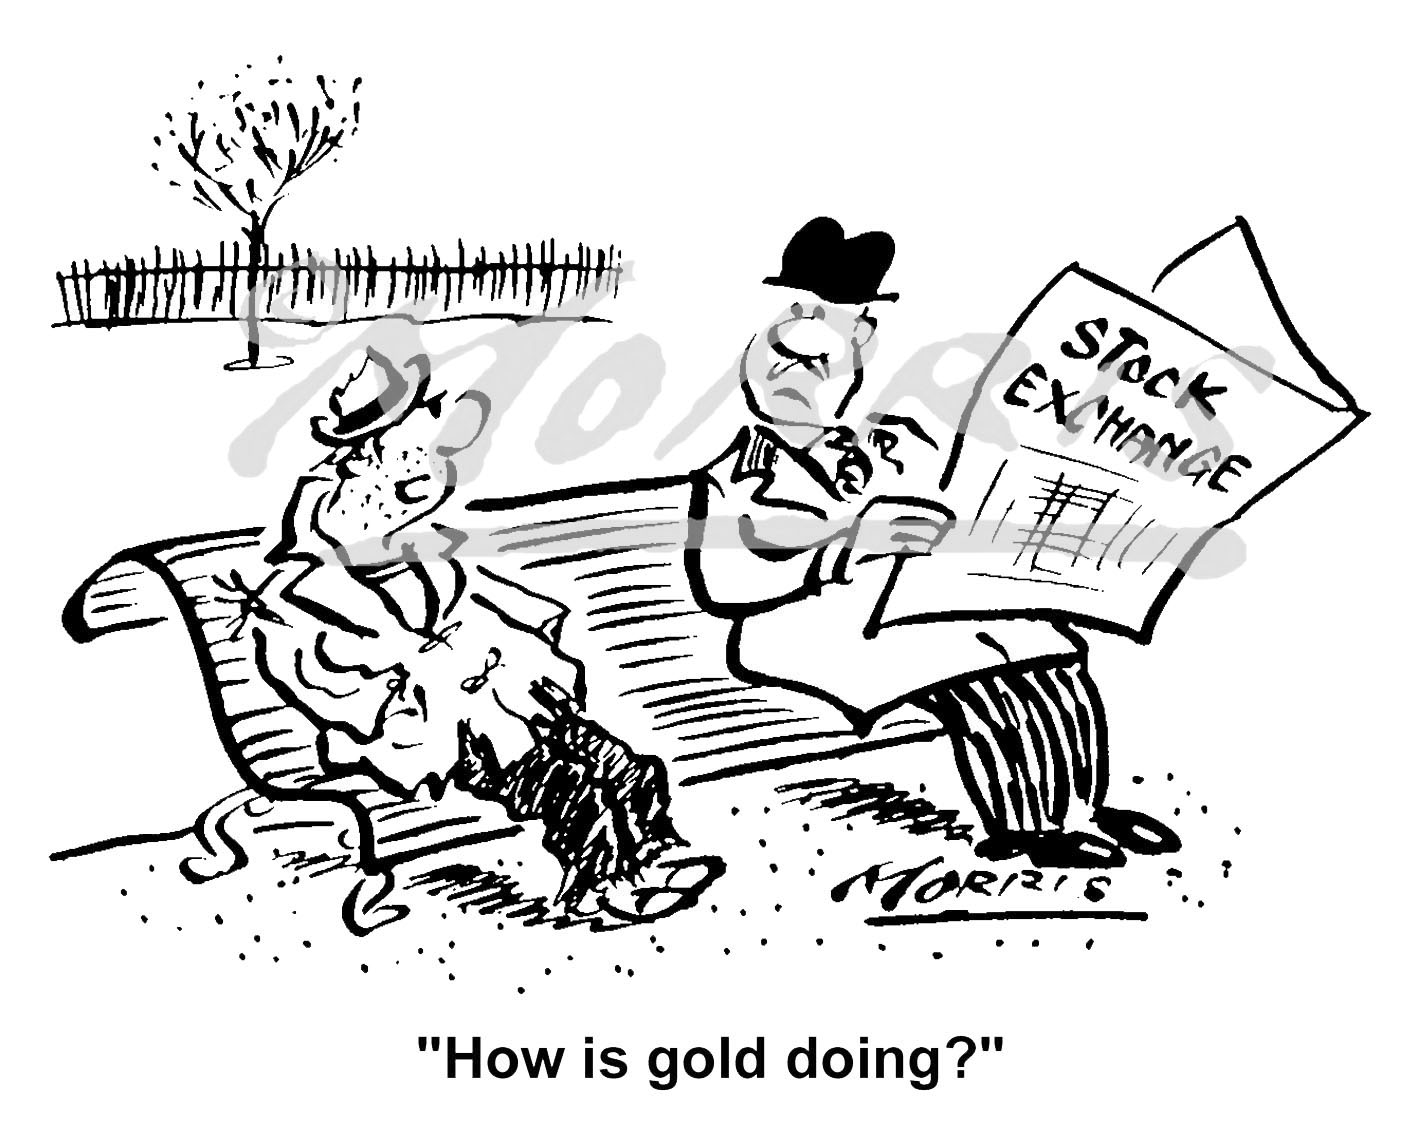 Stock Exchange business cartoon – Ref: 1476bw